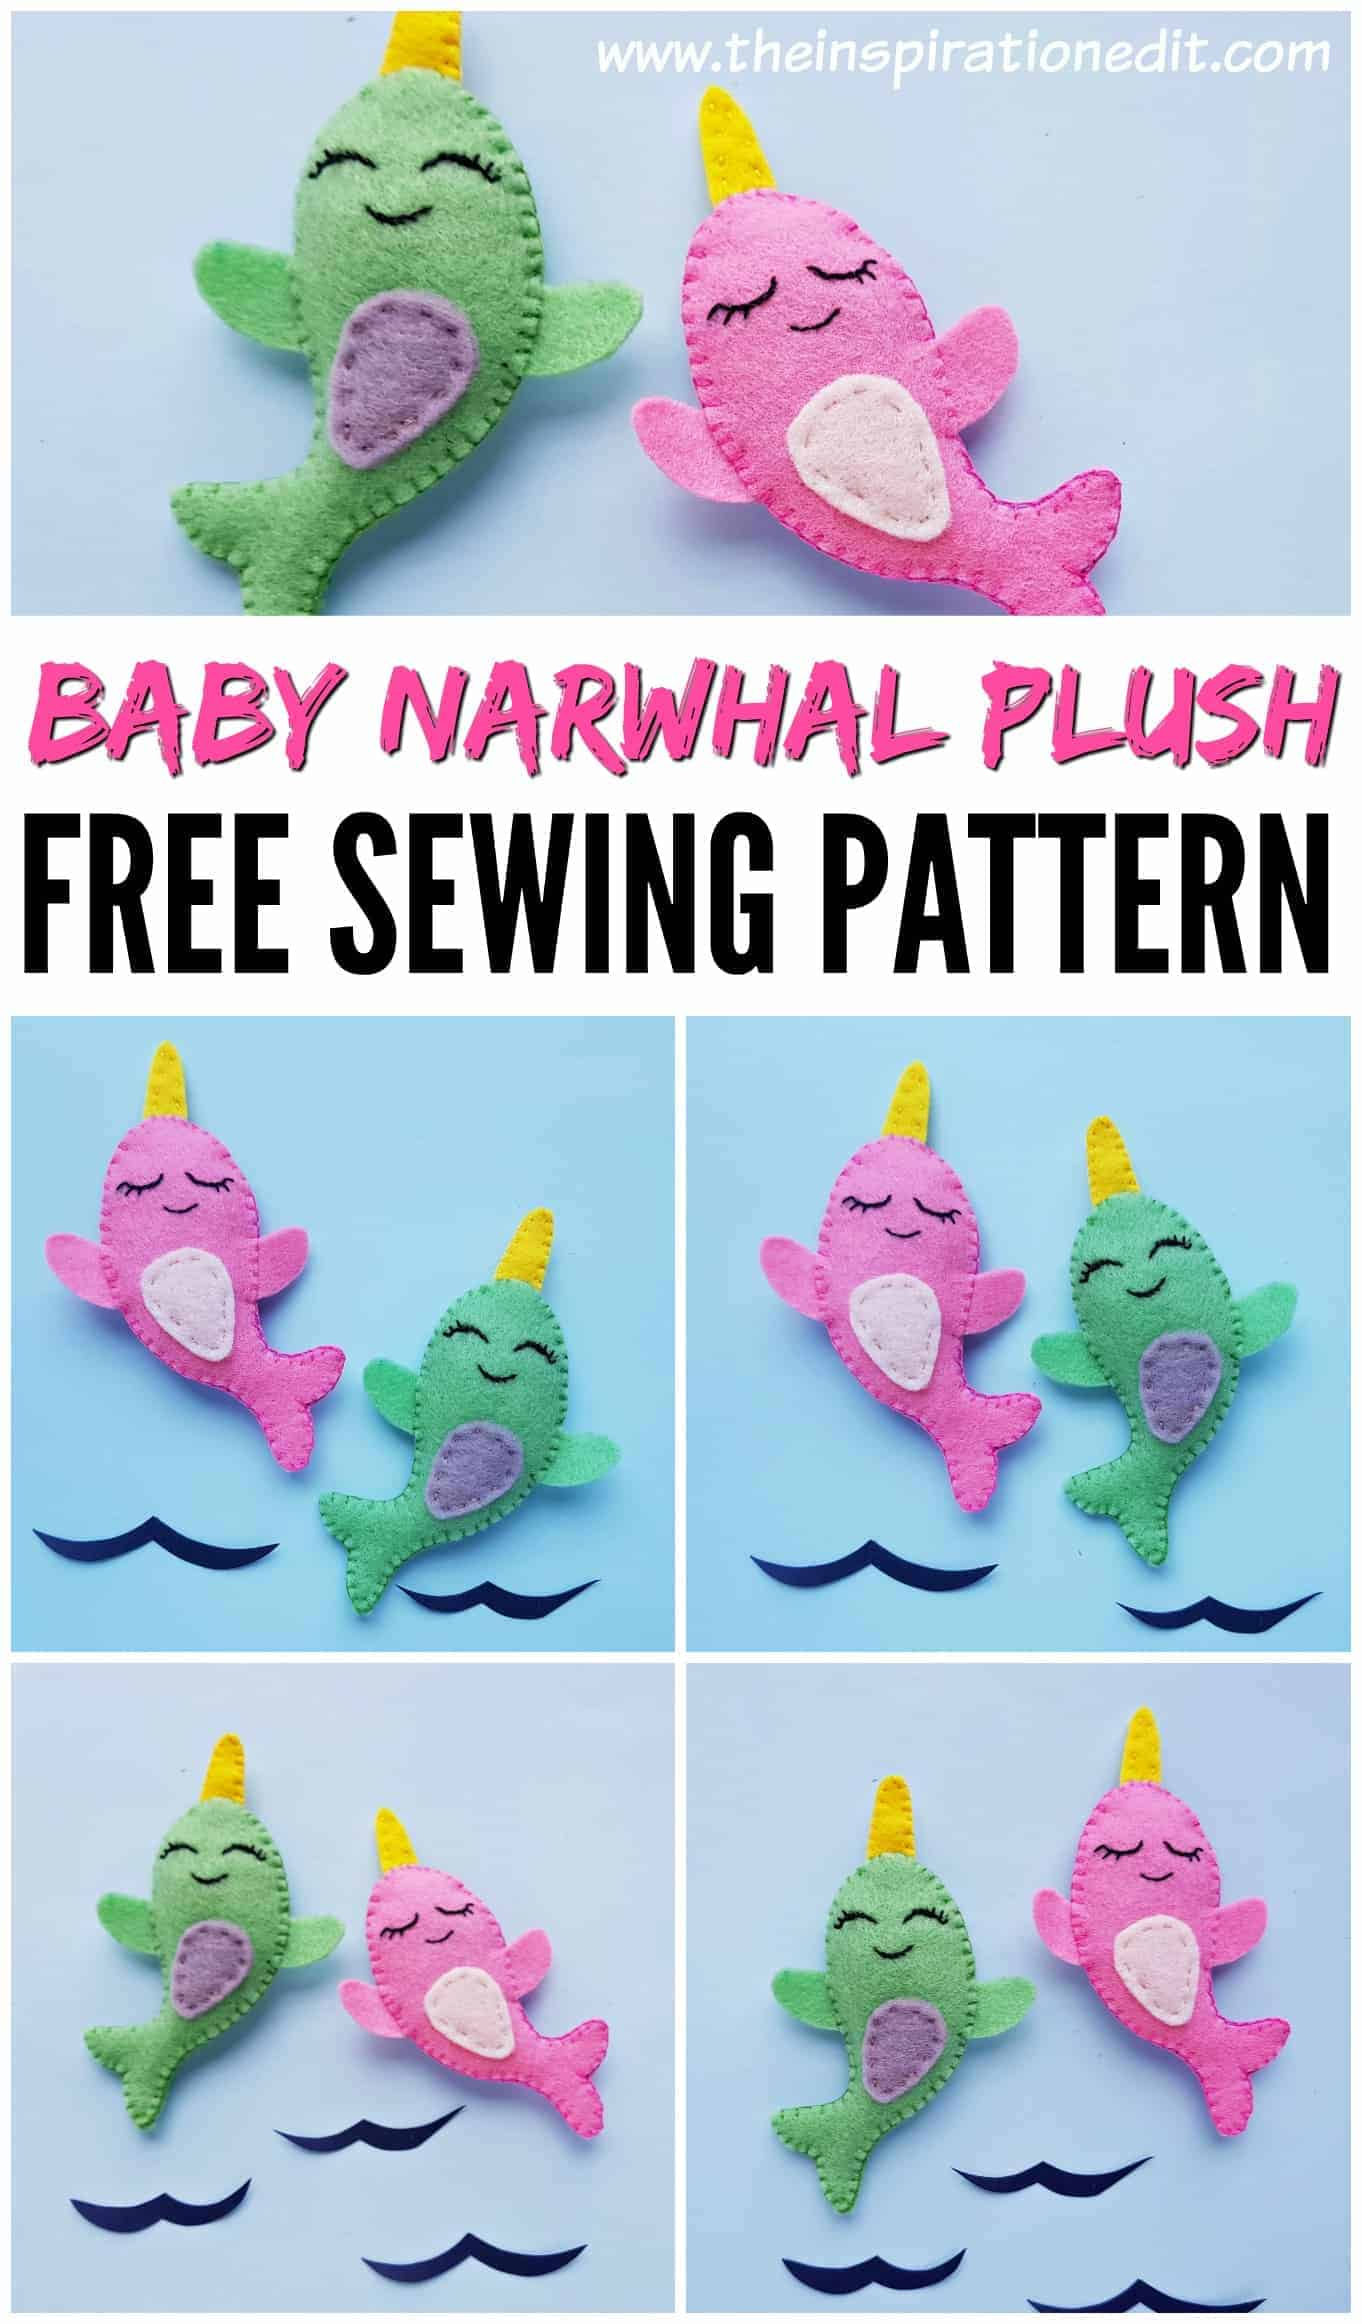 baby narwhal free sewing pattern